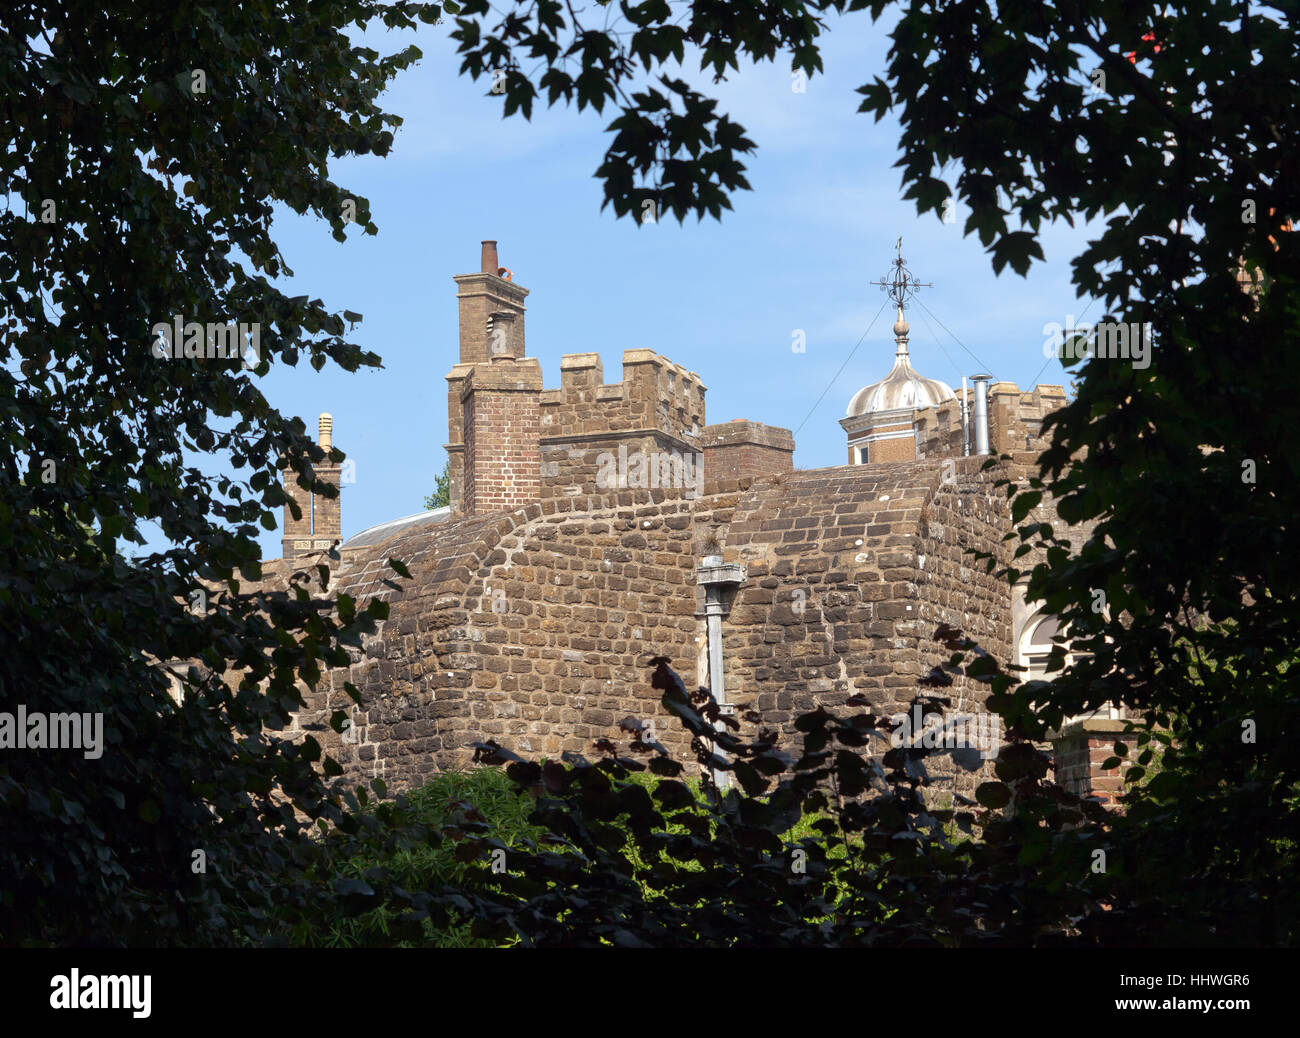 Rear view of Walmer Castle framed by the surrounding trees in the gardens - Stock Image